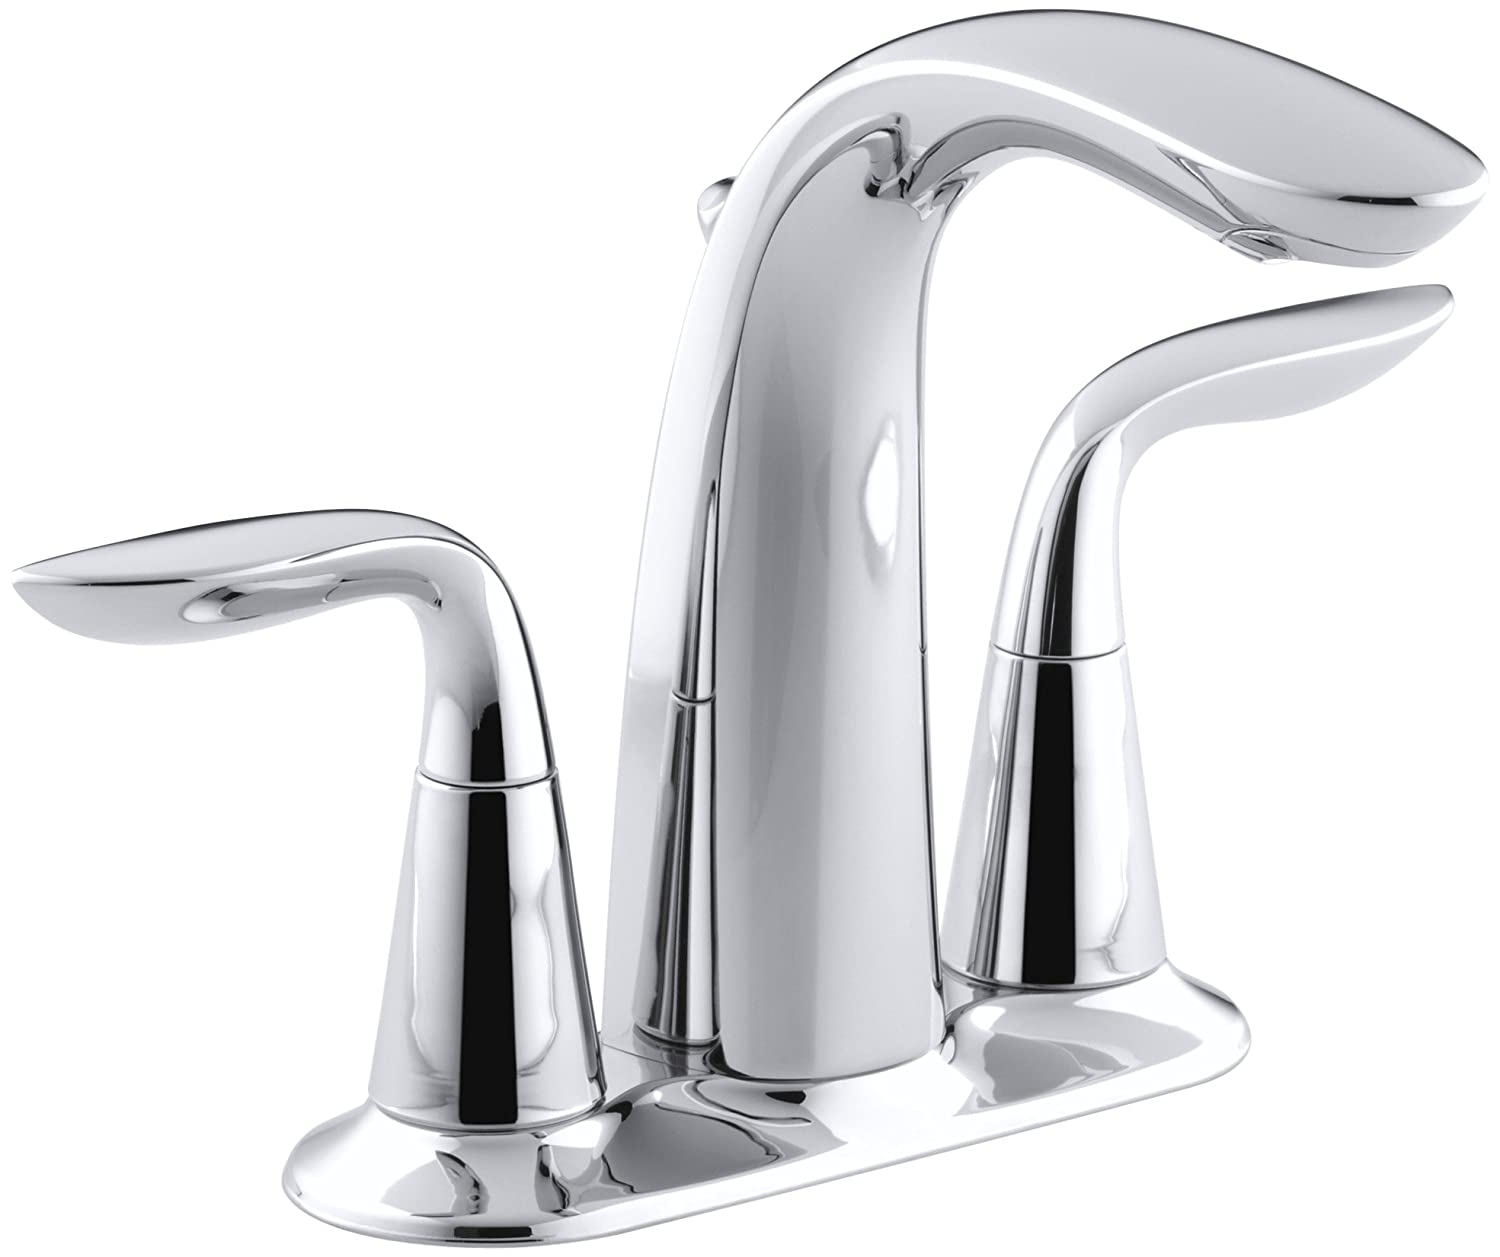 p ppu delta faucet in eco centerset foundations chrome bathroom sink handle faucets